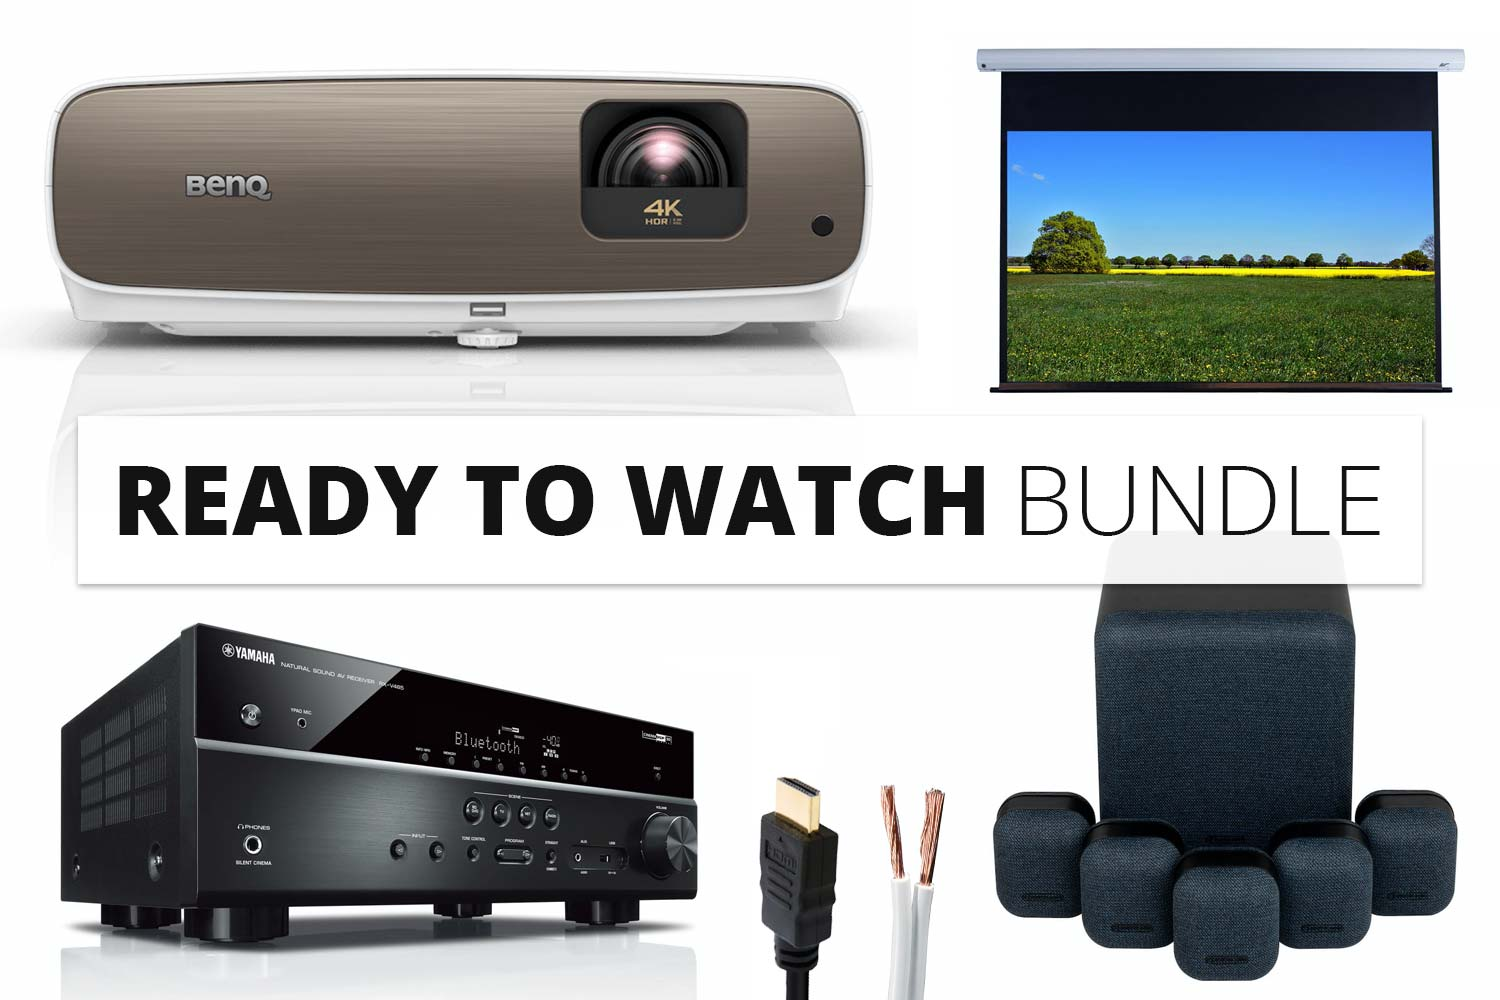 Bundle: BenQ W2700 Beamer + Elite Screens Saker Leiwand + Monitor Audio MASS Lautsprecher + Yamaha RX-V485 AV-Receiver + Kabel